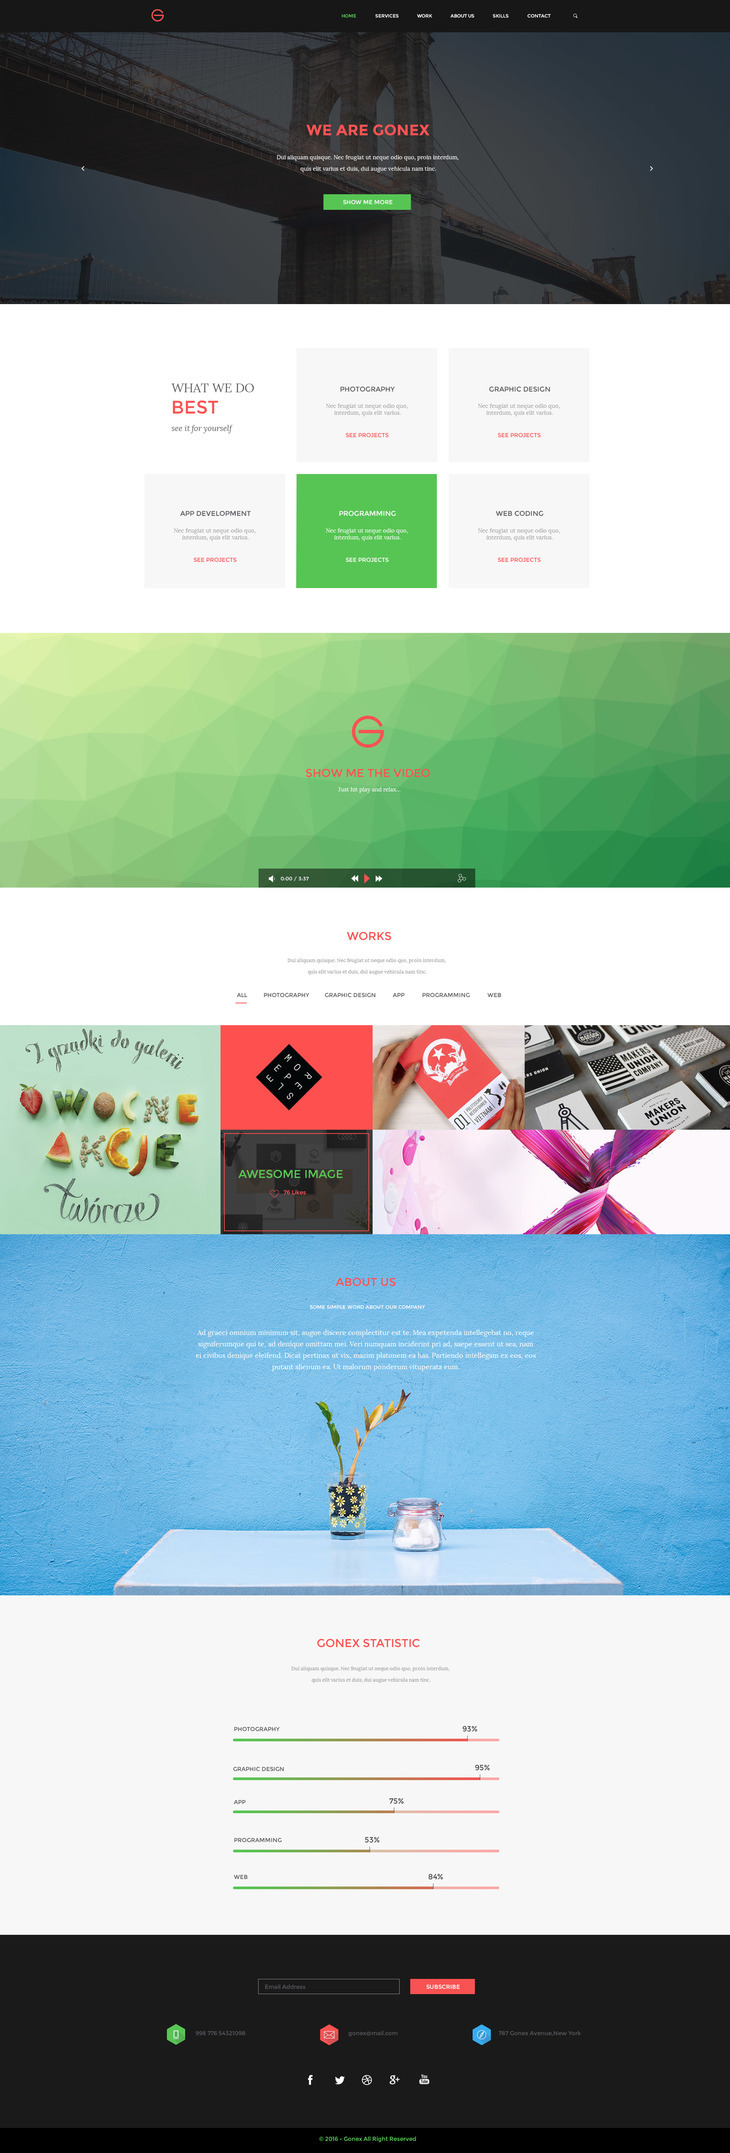 Gonex - Free Bootstrap HTML One Page Template preview